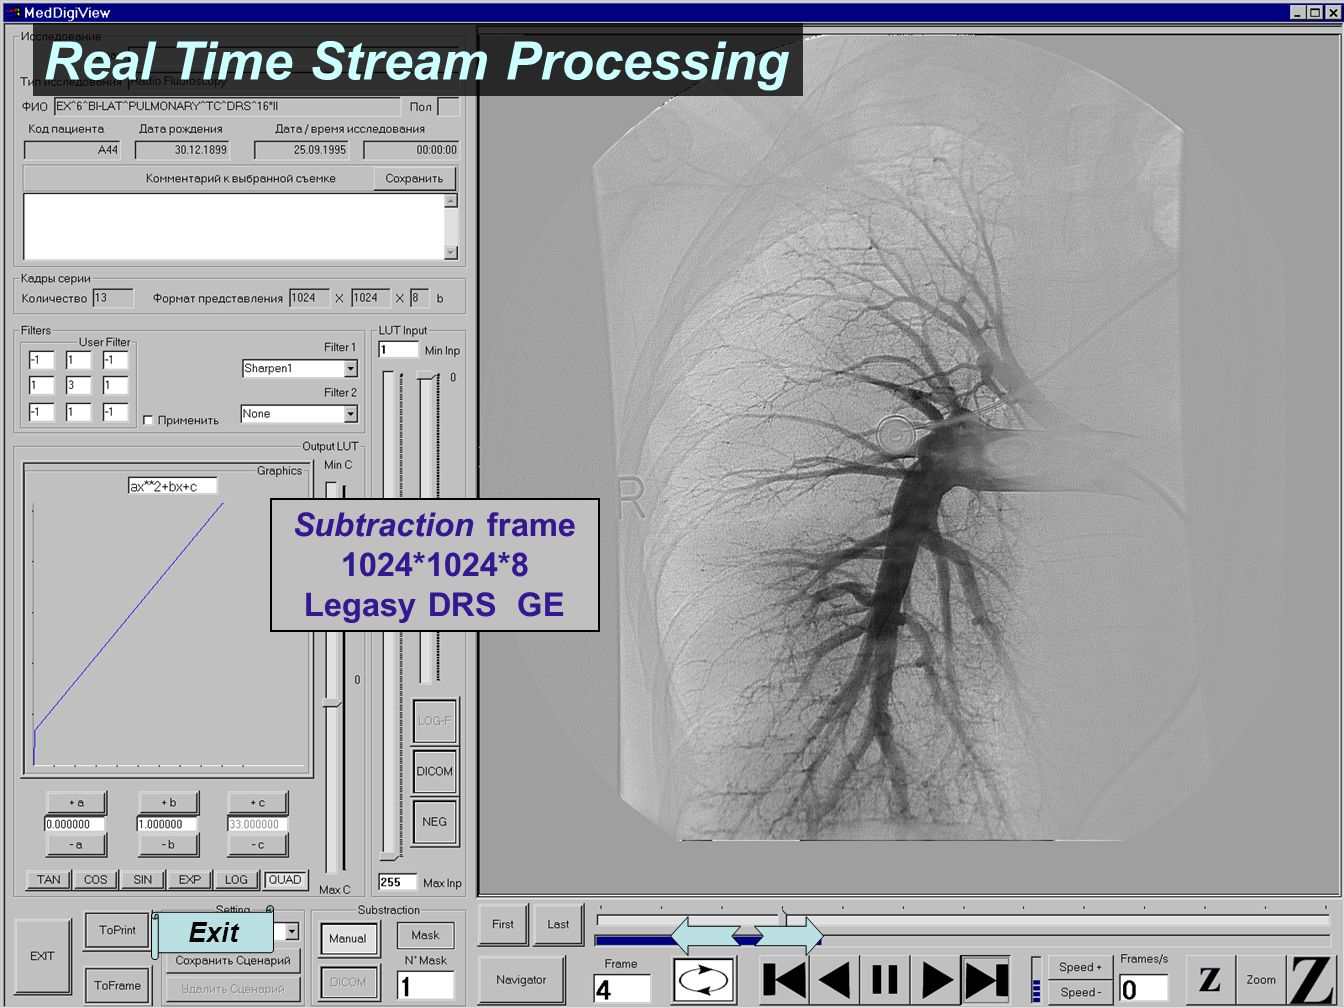 Real Time Stream Processing